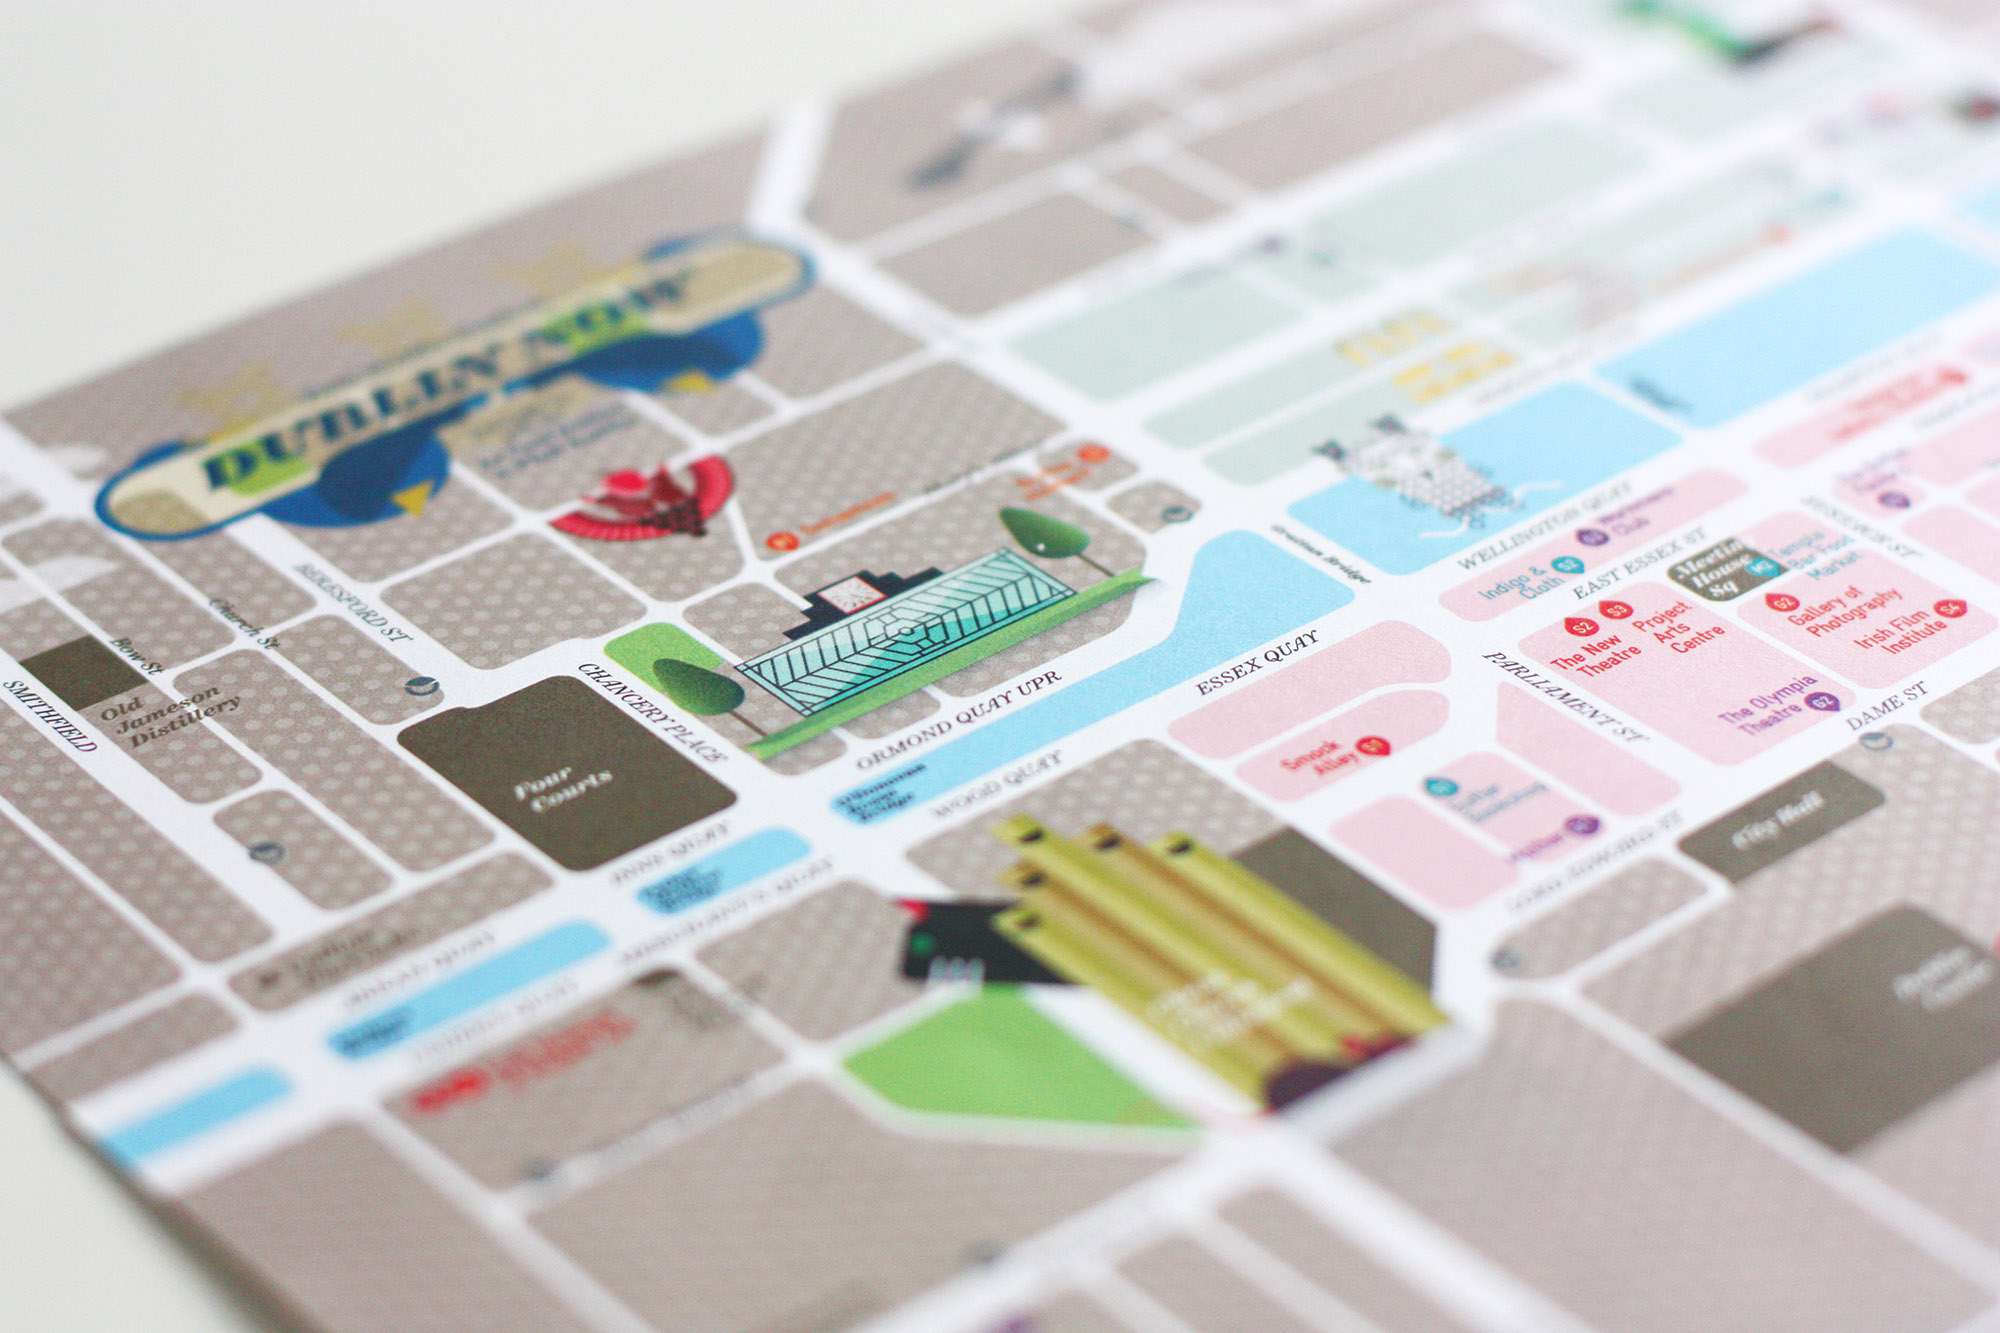 Cover image: Dublin City as a grid – Map (2014)